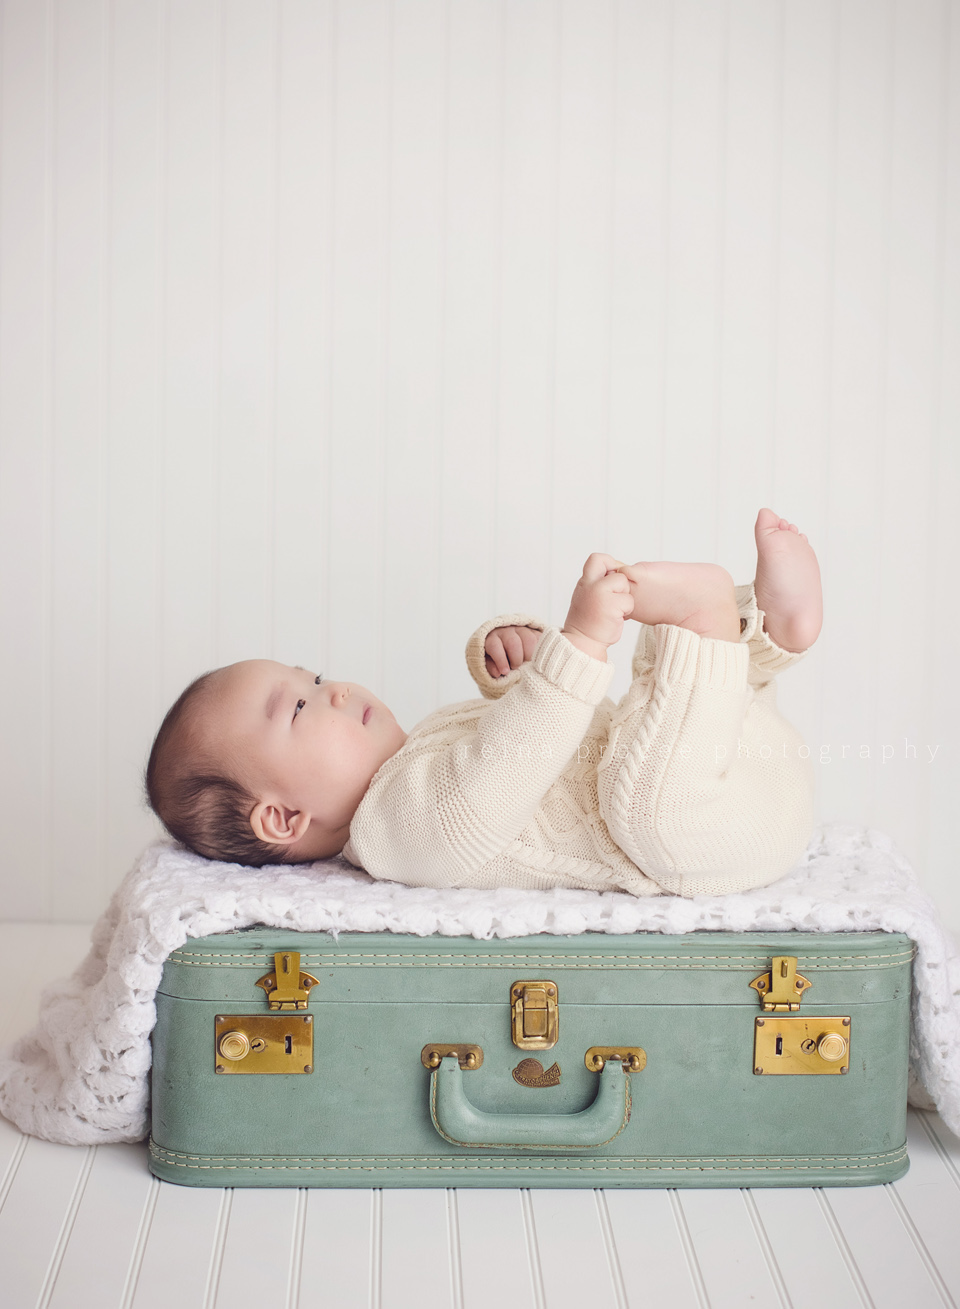 son lying on green suitcase playing with toes